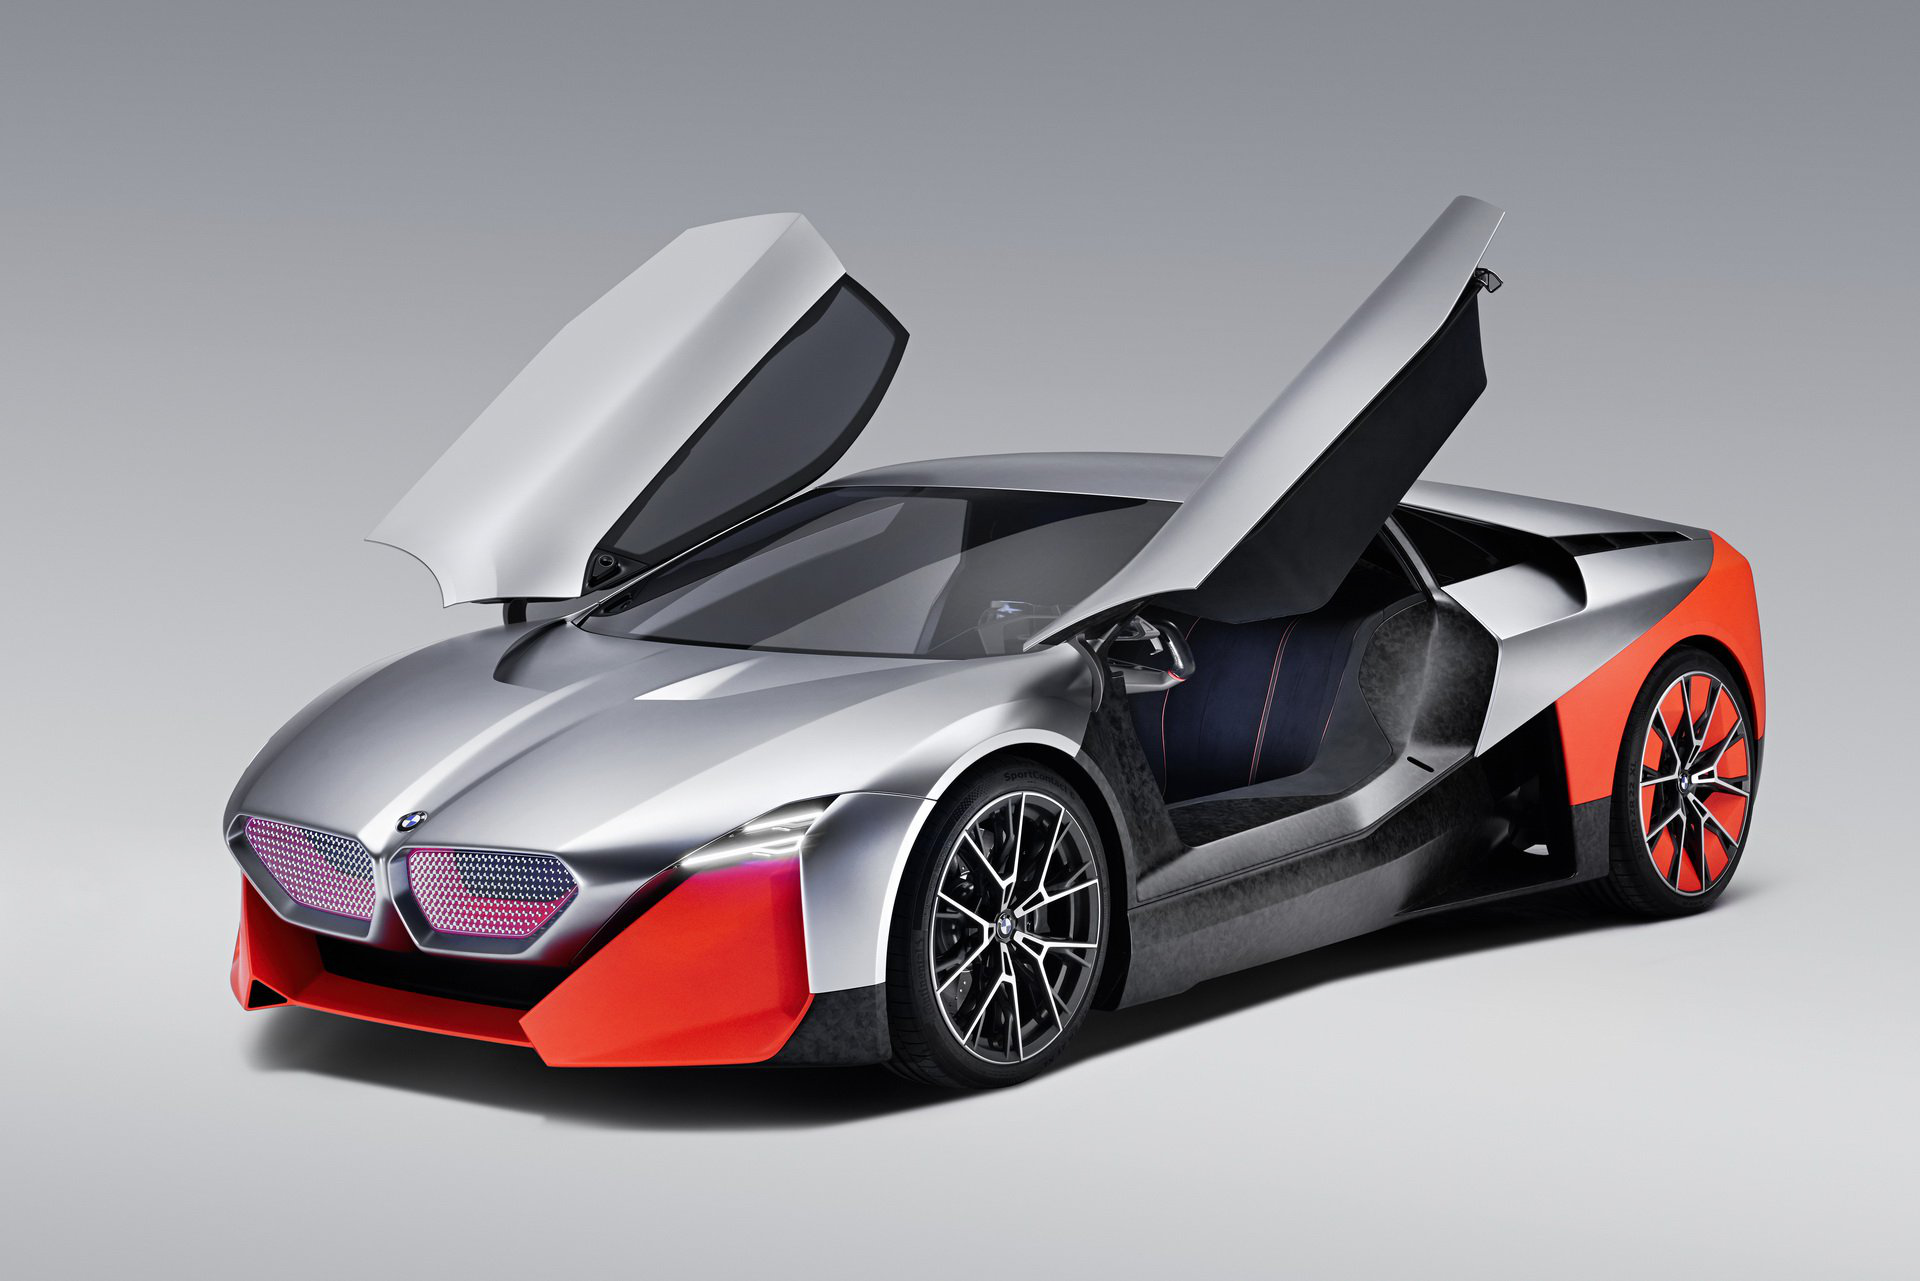 Bmw I3 And I8 To Be Killed Vision M Next Might Hit Production Carmojo The Hybrid Sports Car Concept Gets 600 Hp Super Cars Bmw Concept Hybrid Sports Car